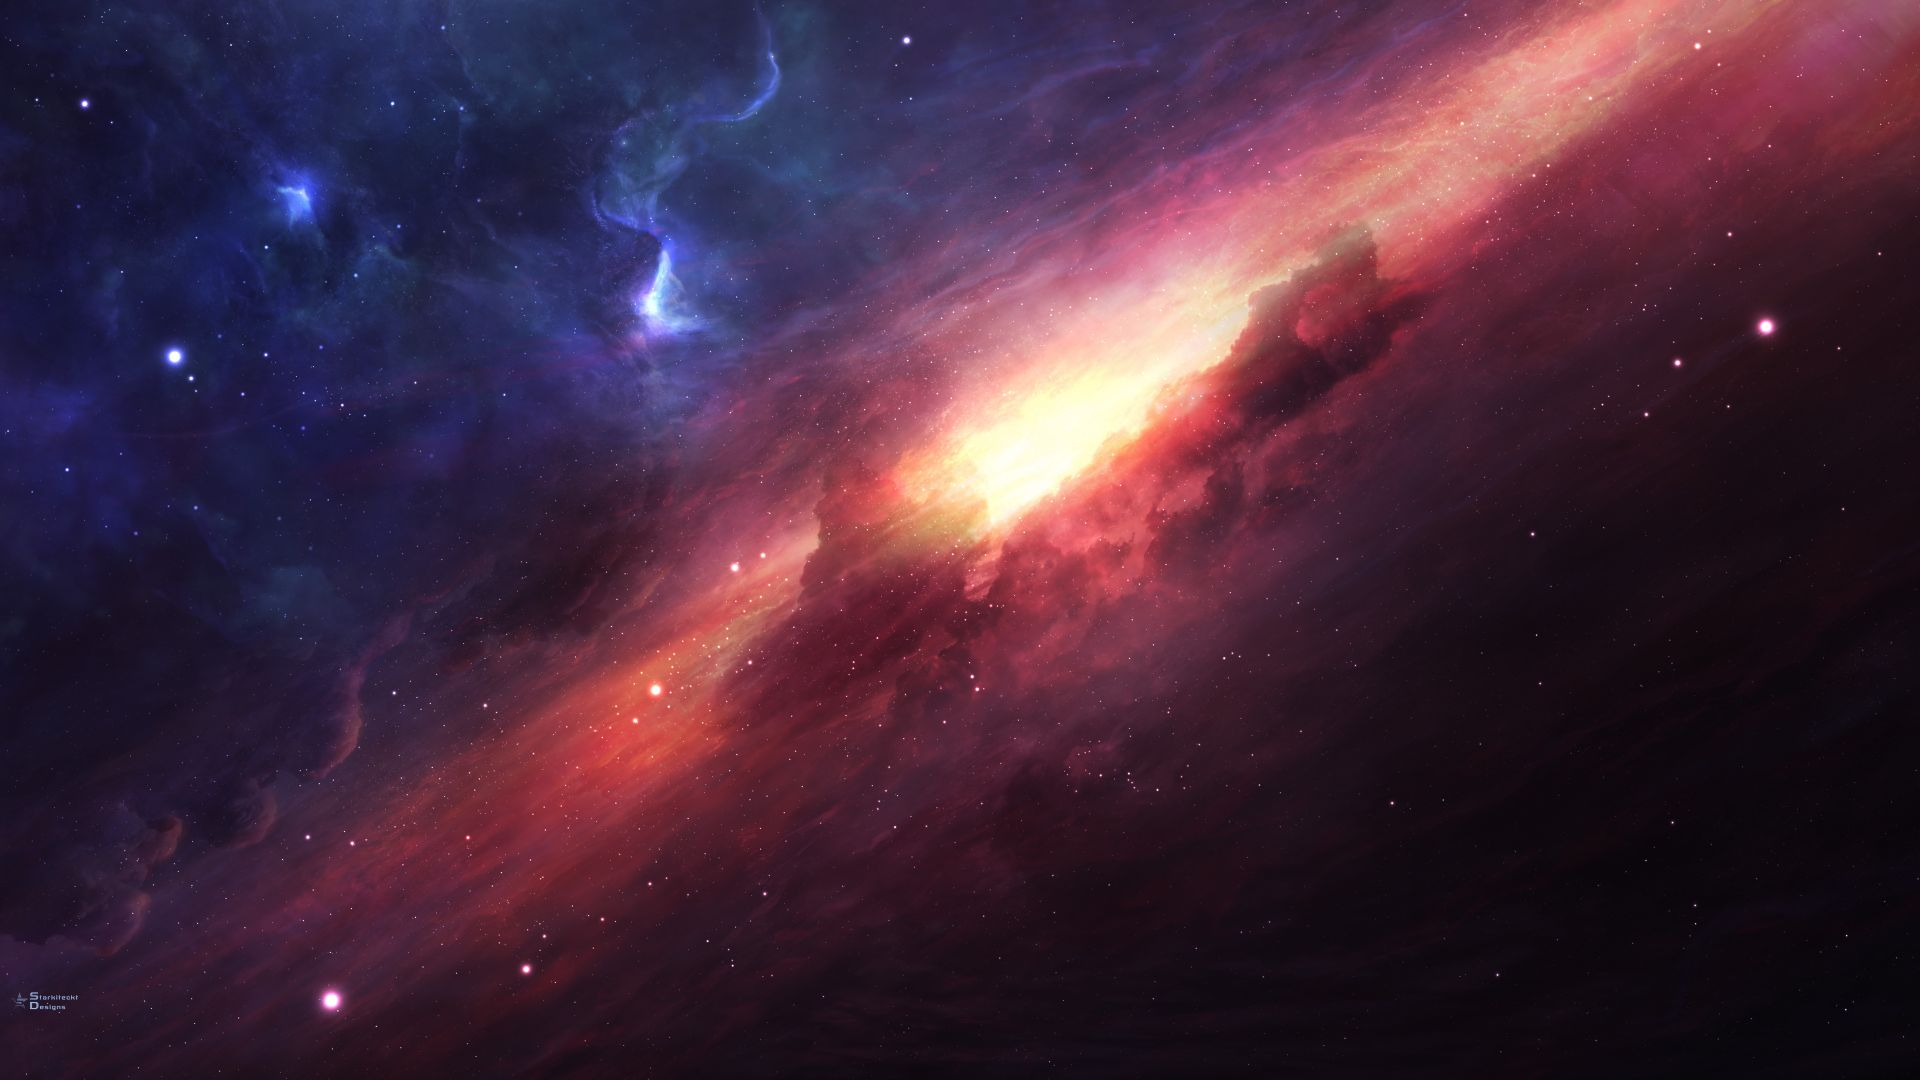 арт, космос, галактика, звезды, art, space, galaxy, universe, stars